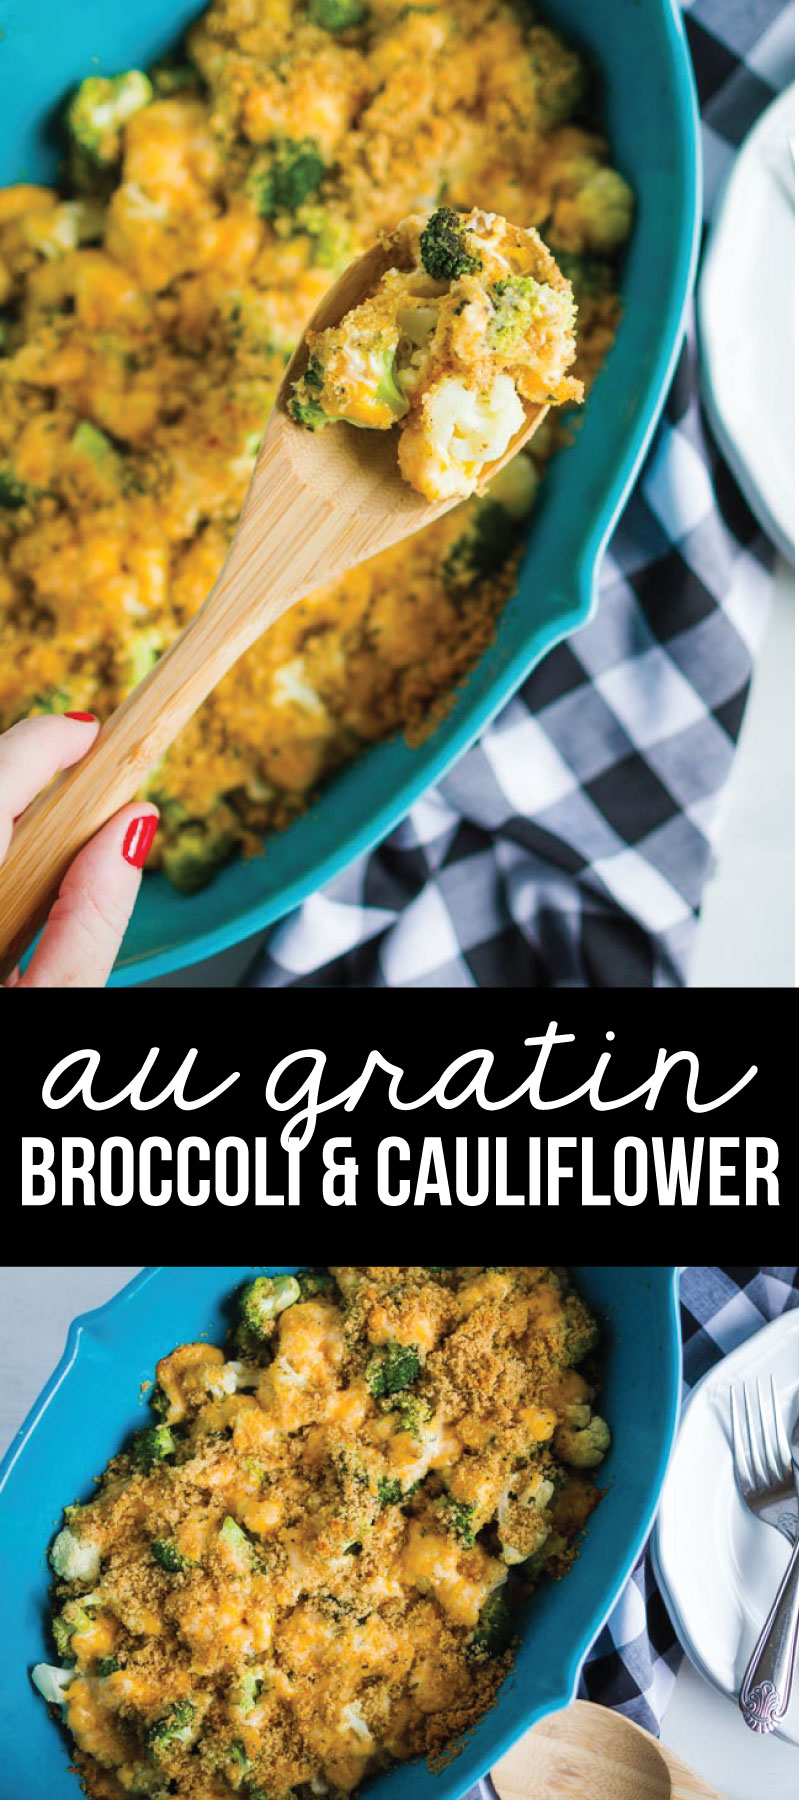 Food: Au Gratin Broccoli and Cauliflower - make this delicious side dish to go with any dinner! www.thirtyhandmadedays.com